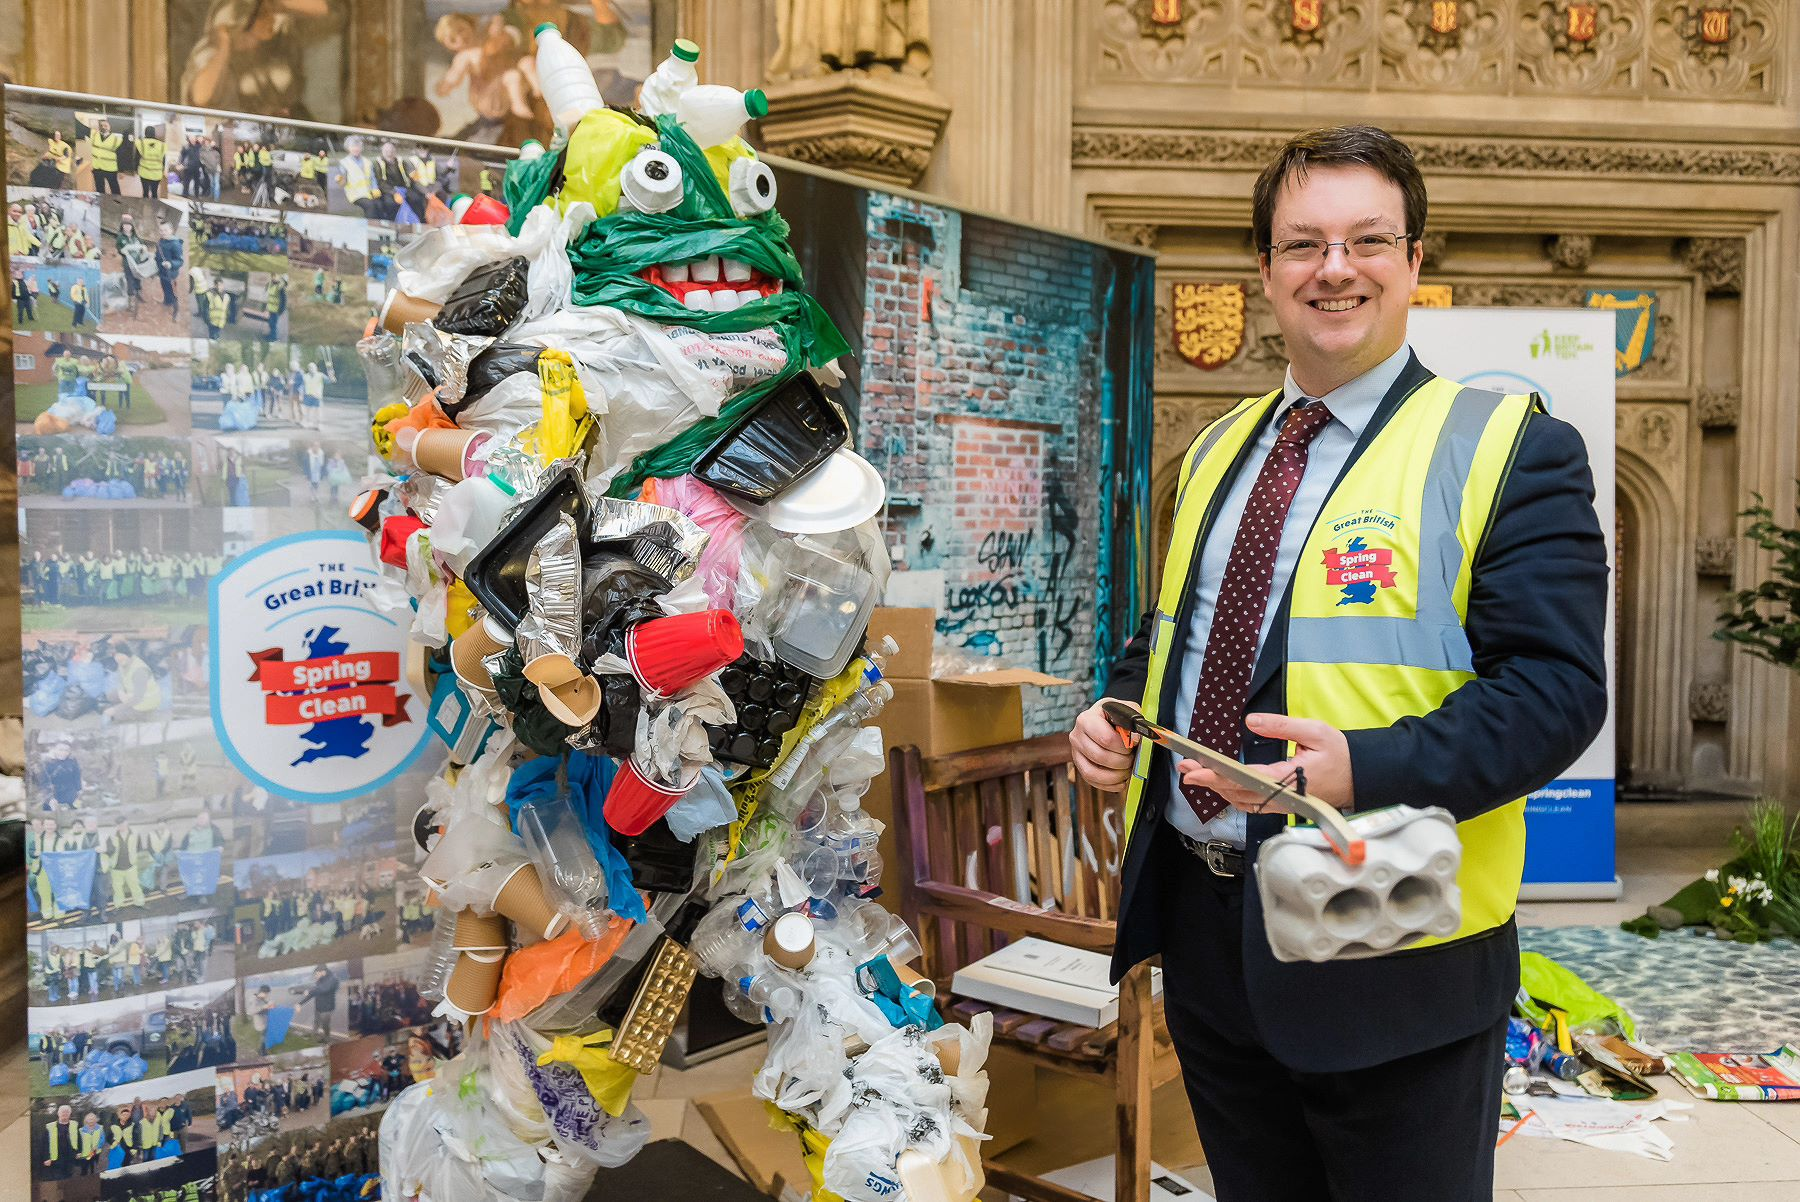 Supporting the launch of the Great British Spring Clean with the Keep Britain Tidy campaign